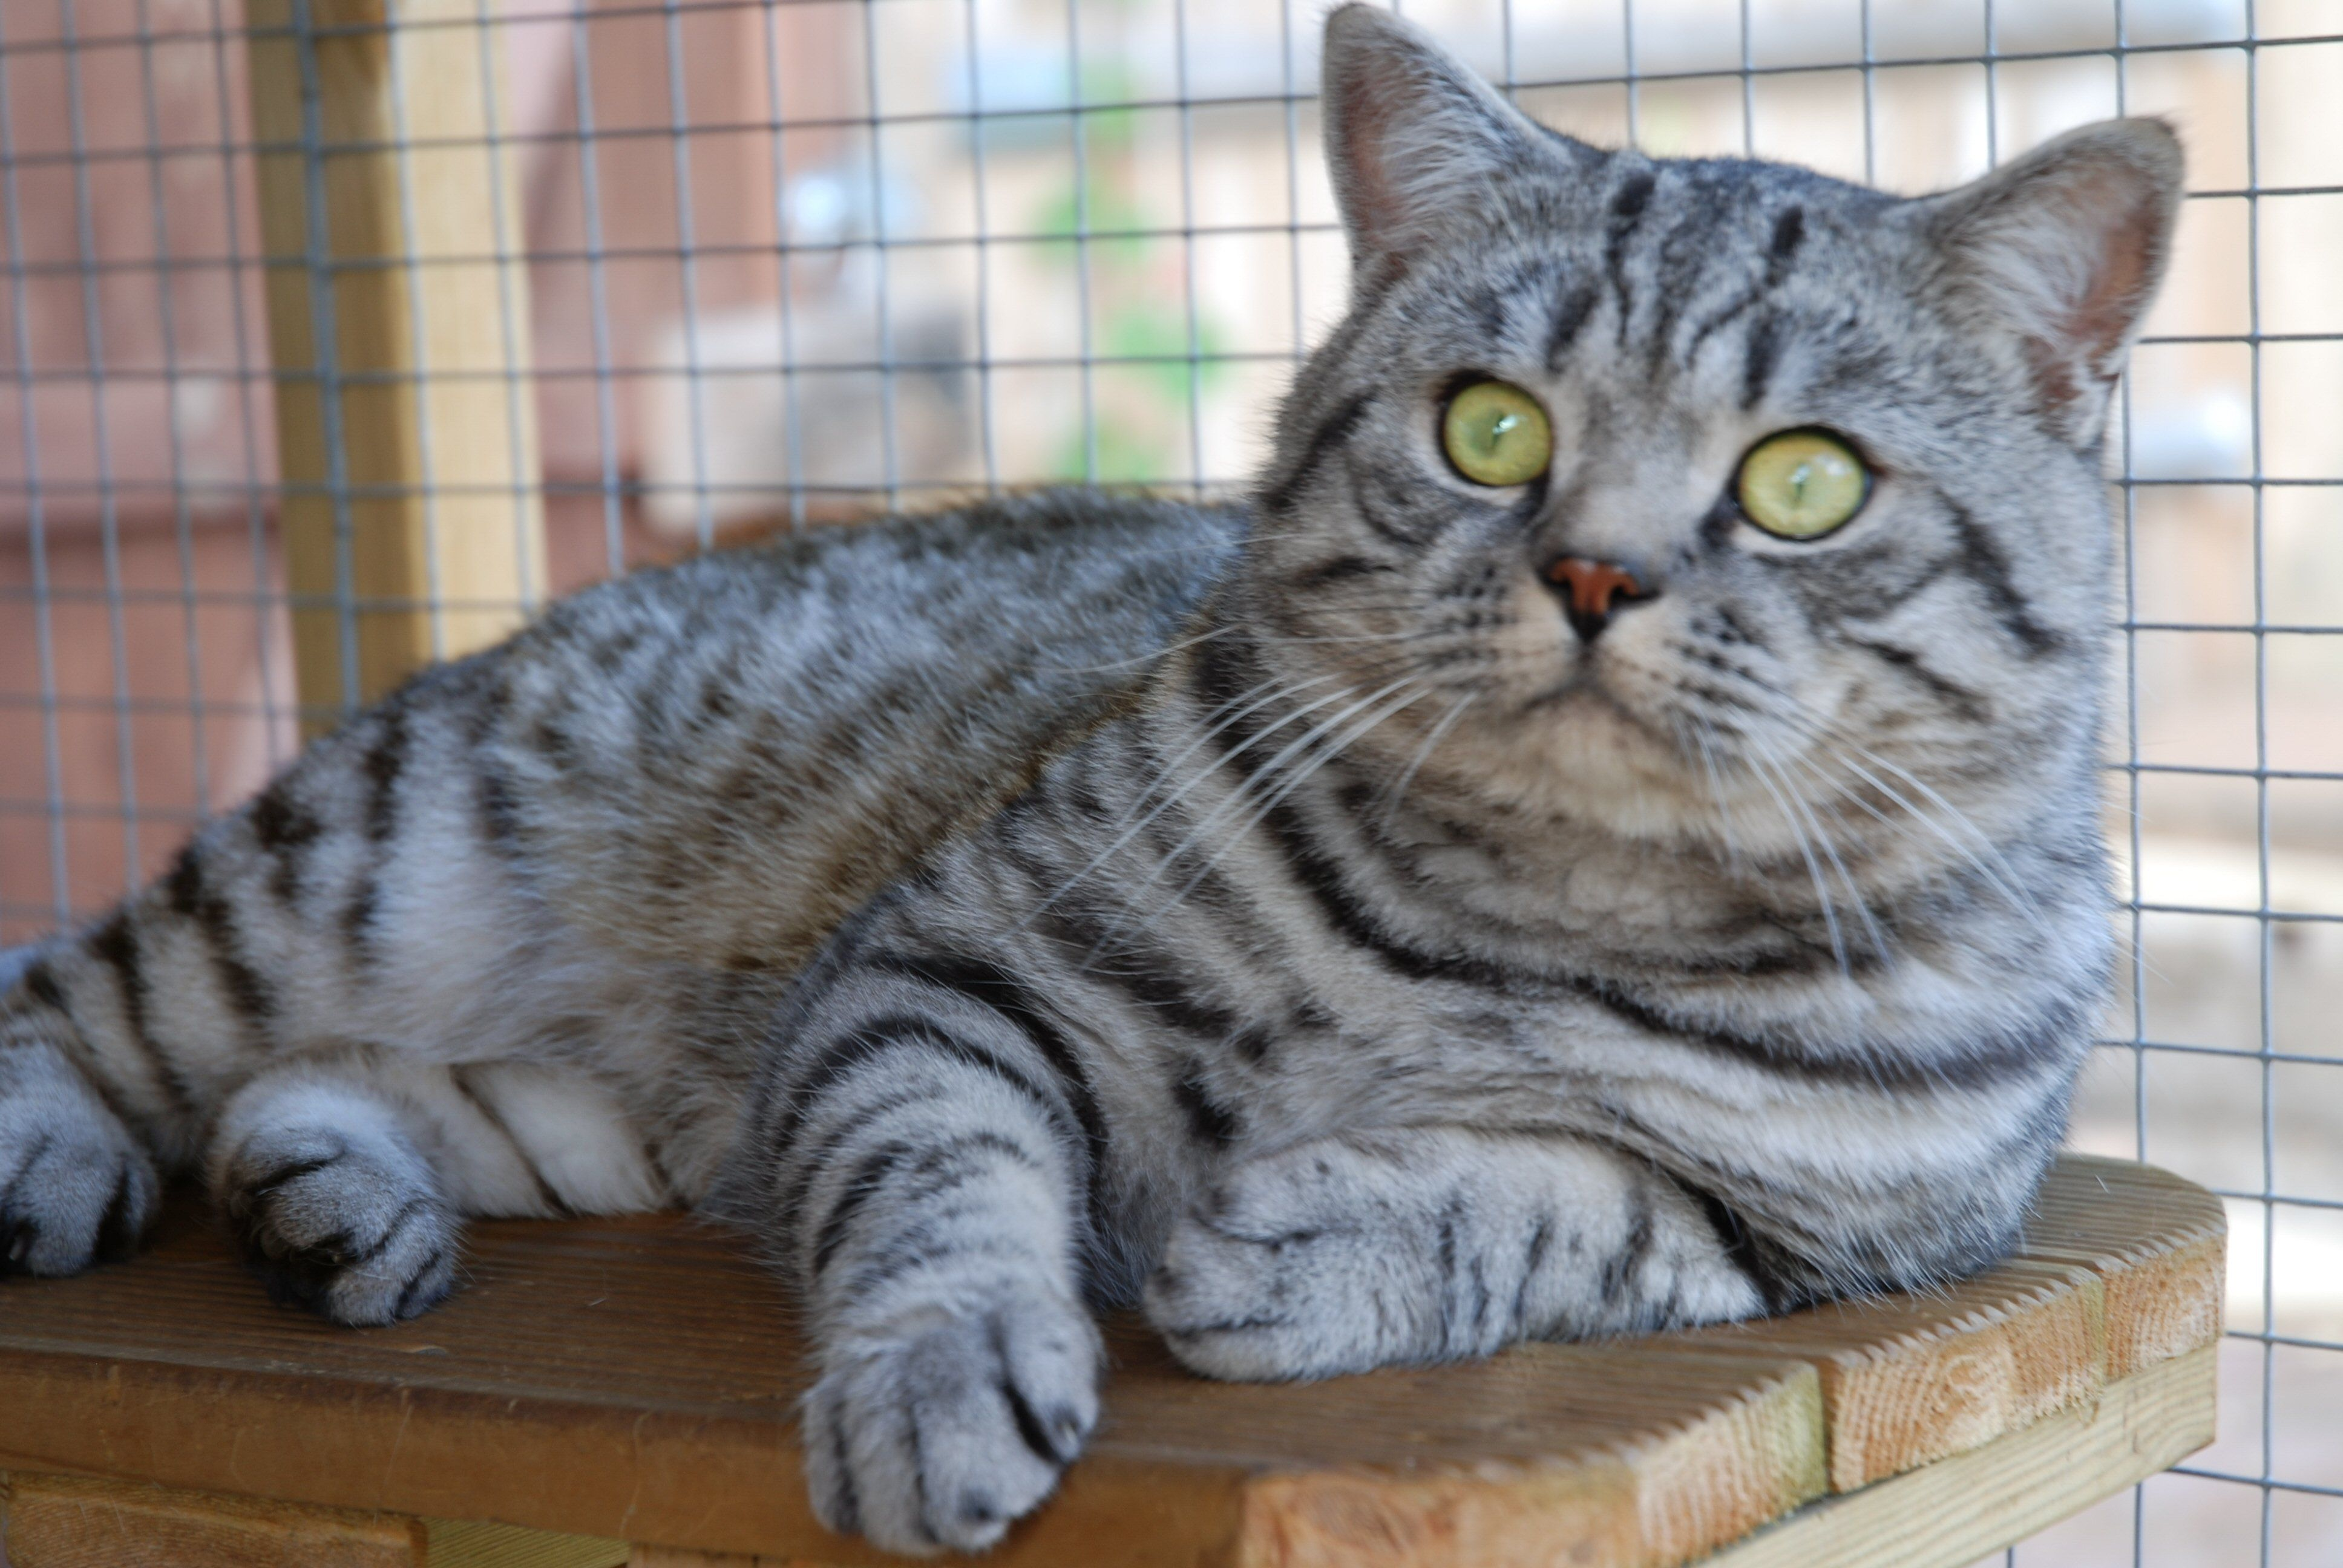 British Shorthair Breeders Of Silver Tabby We Have Colourpointed Kittens For Sale Ready To Go To New Homes Now Description From Kavatechnology C Animaux Chat